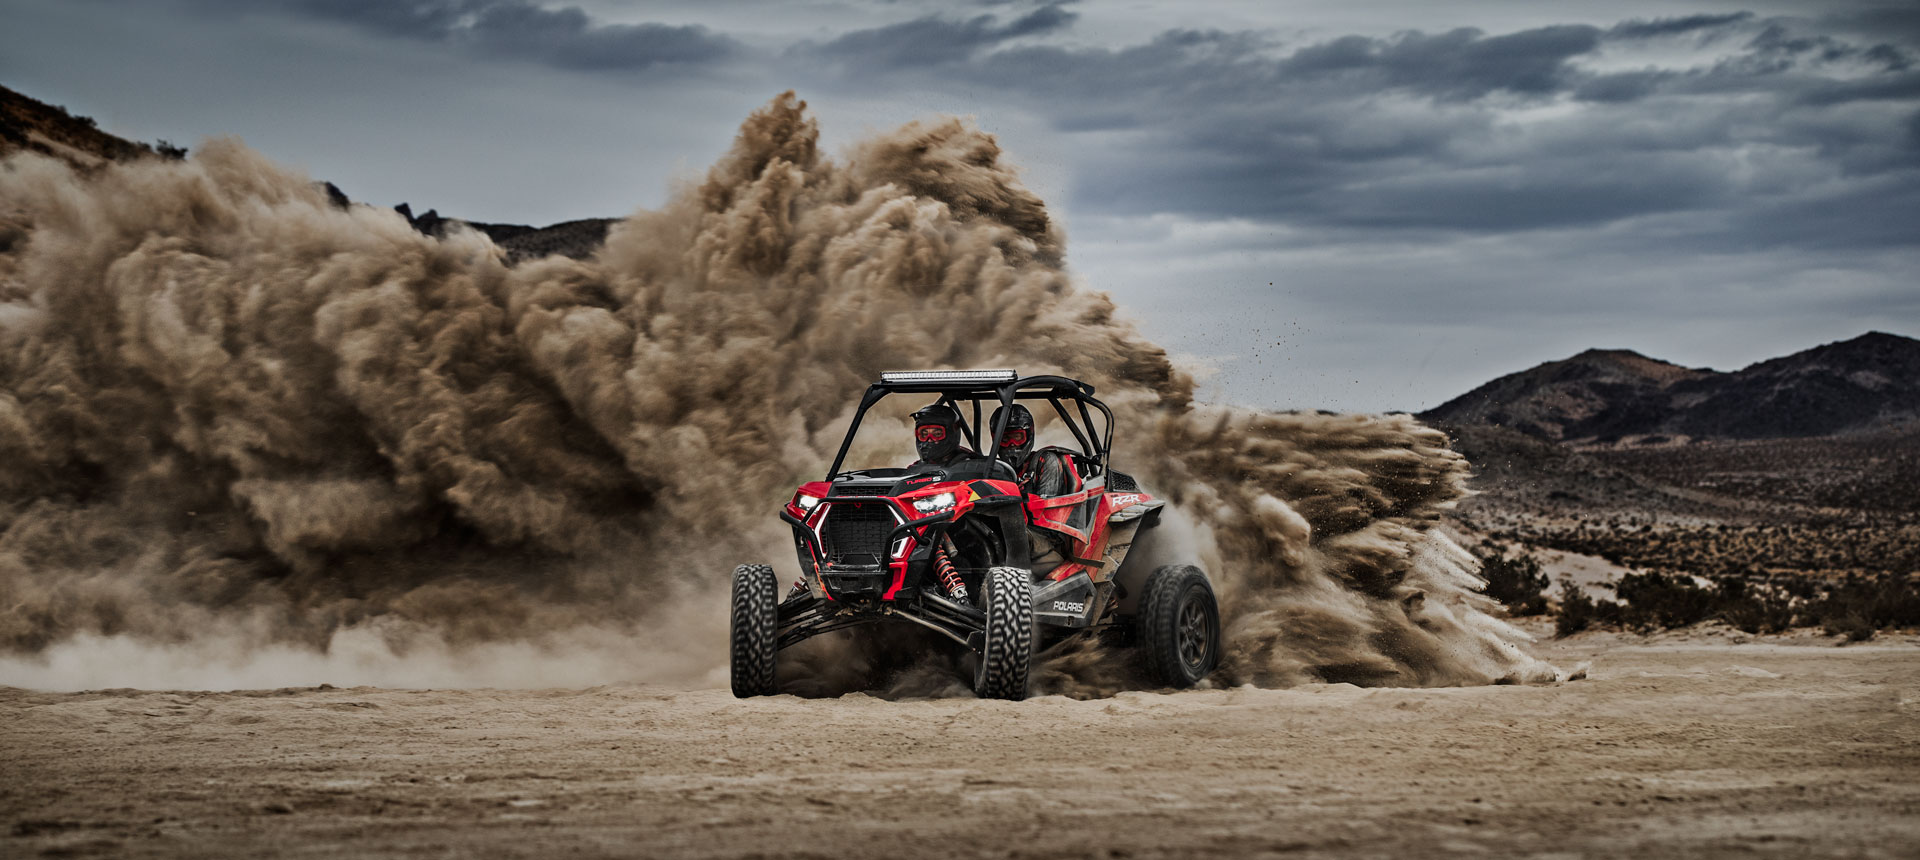 rzr-turbo-s-location-4-lg